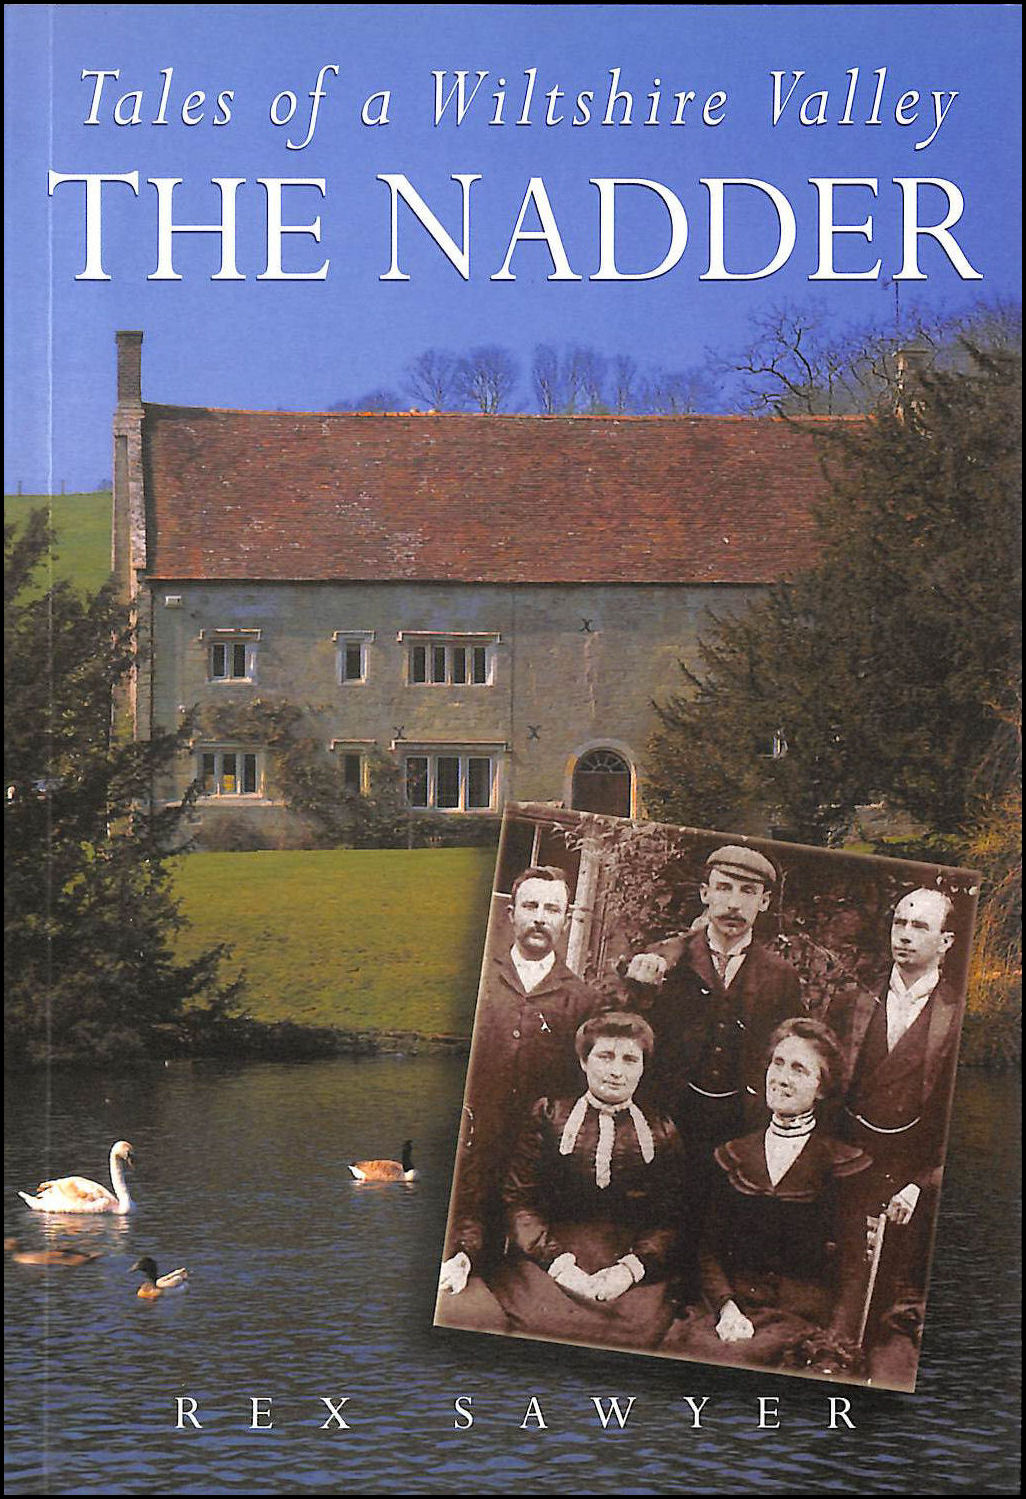 Image for Tales of a Wiltshire Valley: The Nadder